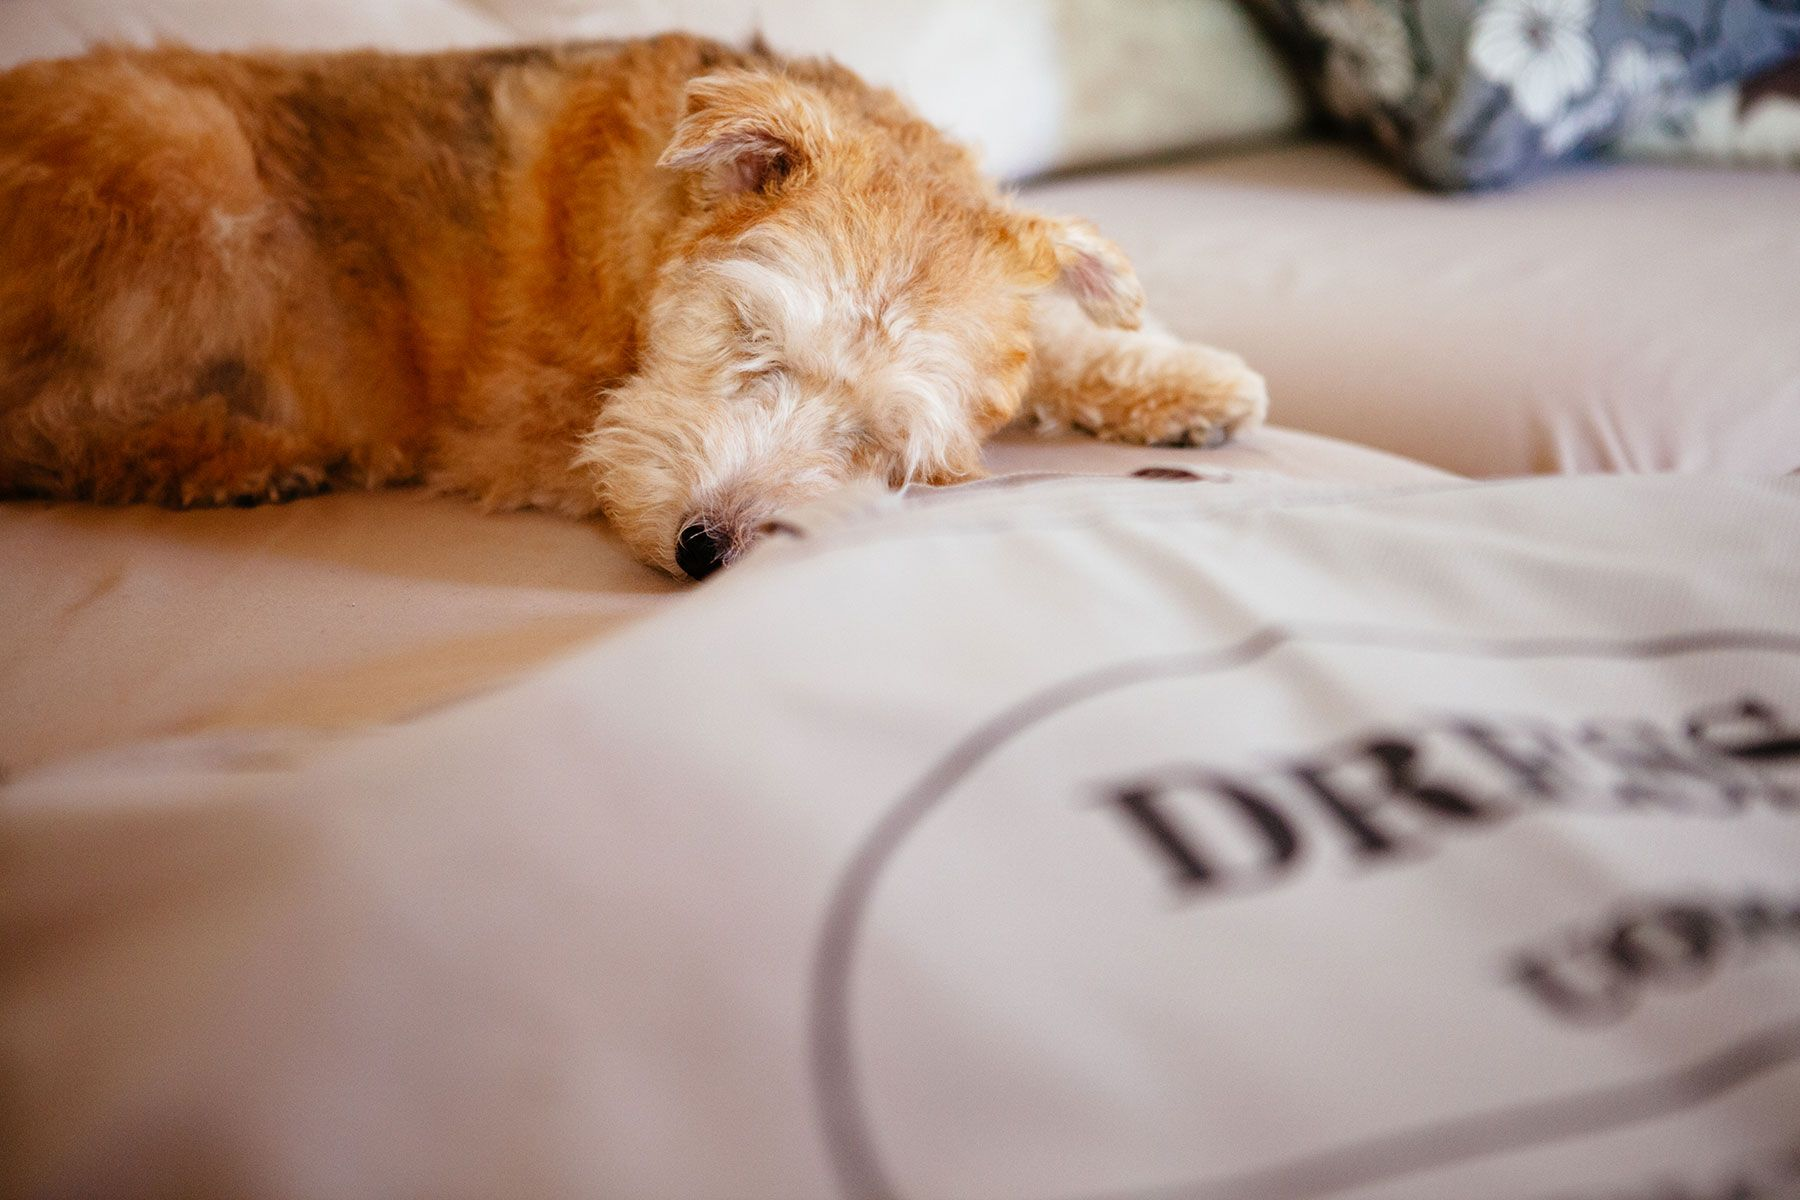 photograph of dog sleeping near wedding dress at Italian wedding